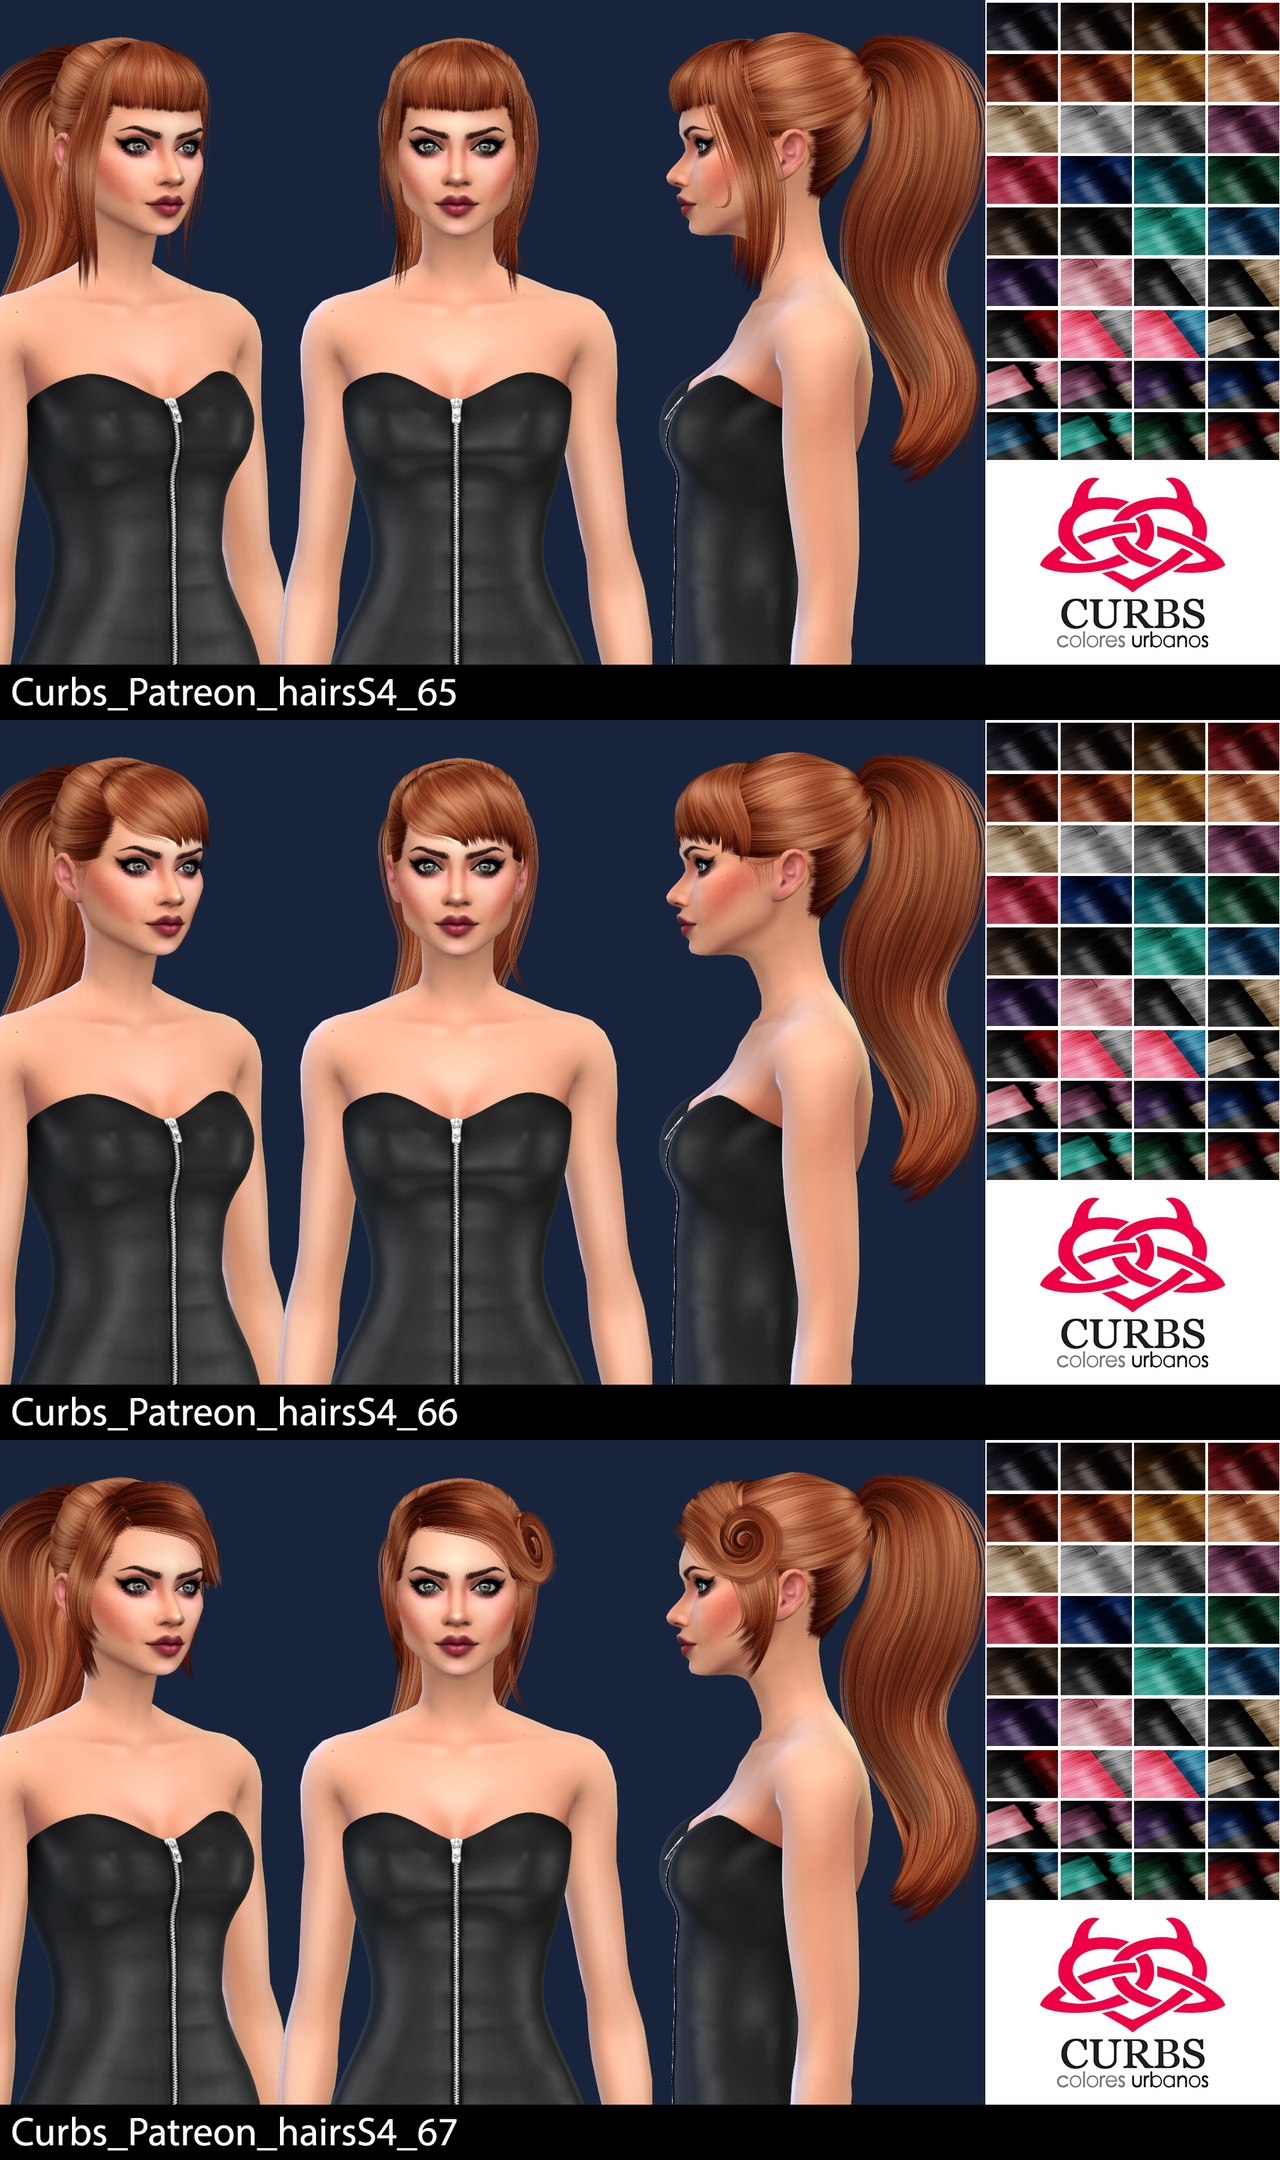 Patreon hairsS4 65, 66, 67 by Colores Urbanos